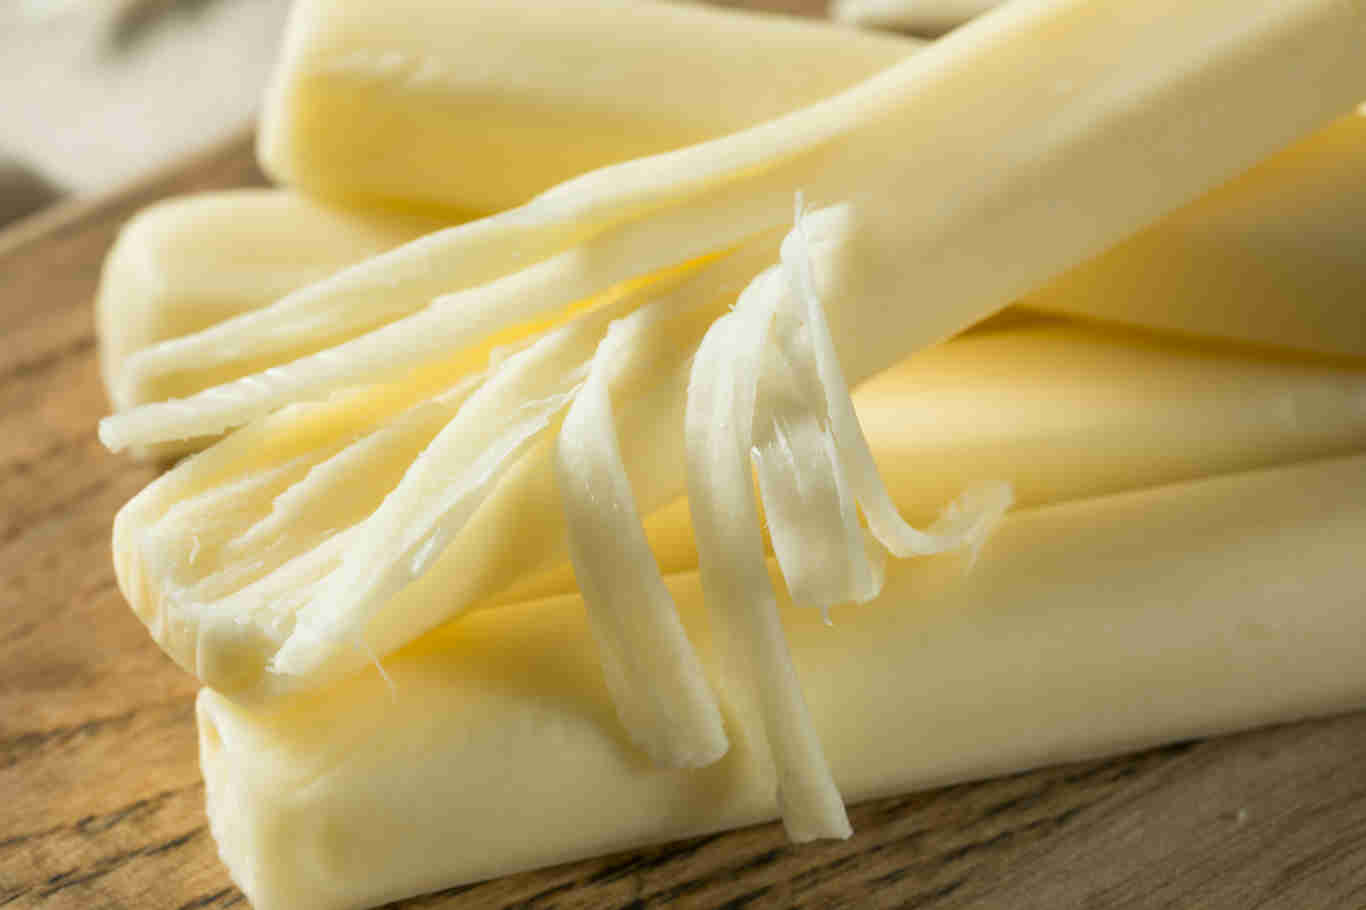 Healthy Organic String Cheese For a Snack